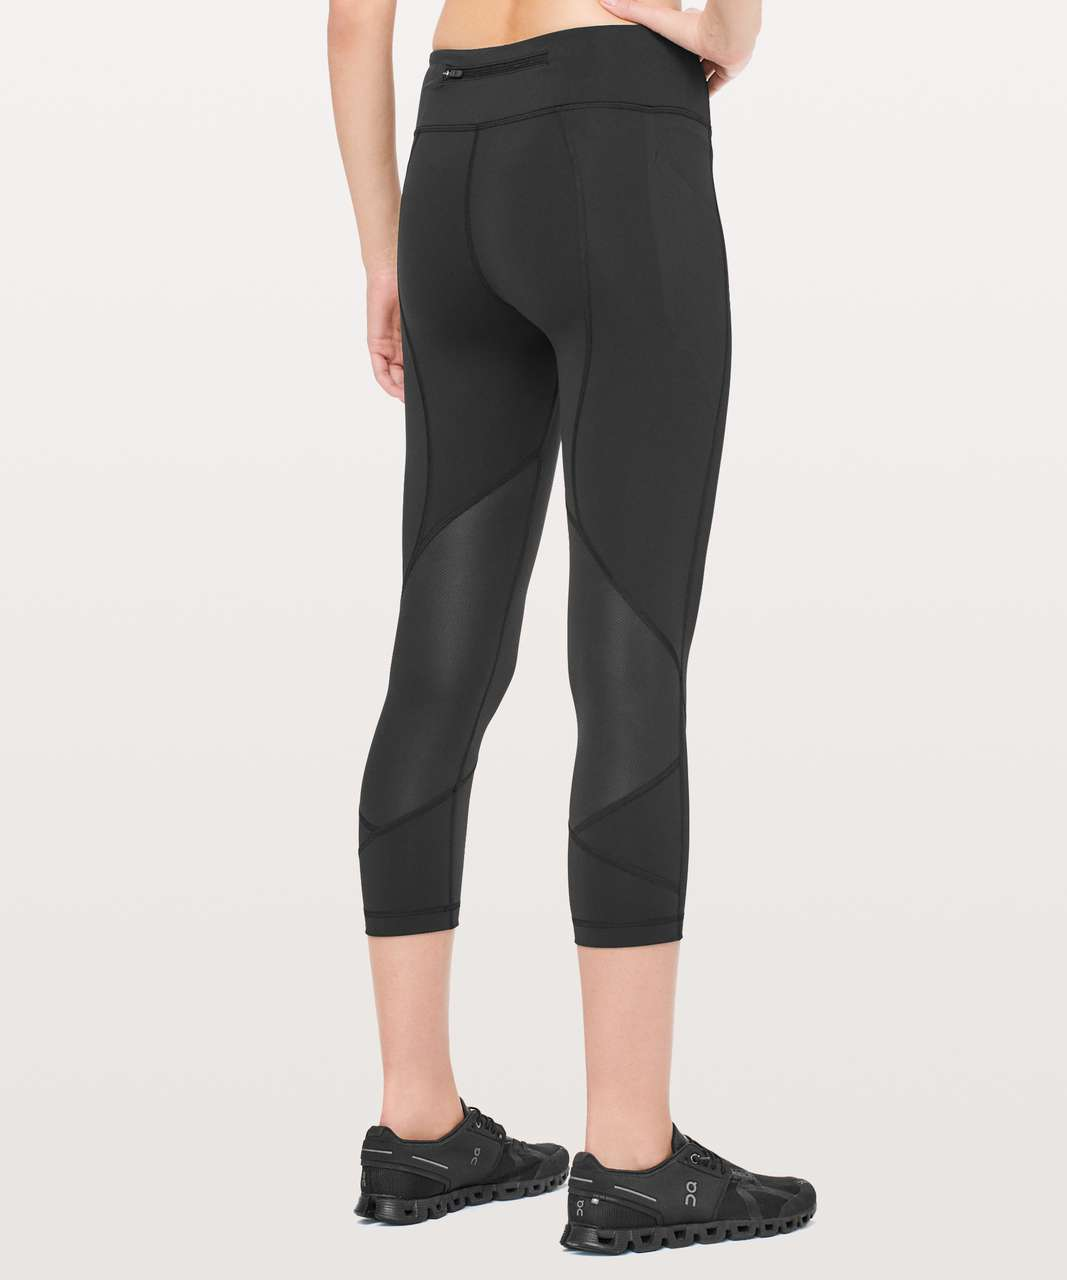 "Lululemon Pace Rival Crop *Full-On Luxtreme 22"" - Black"